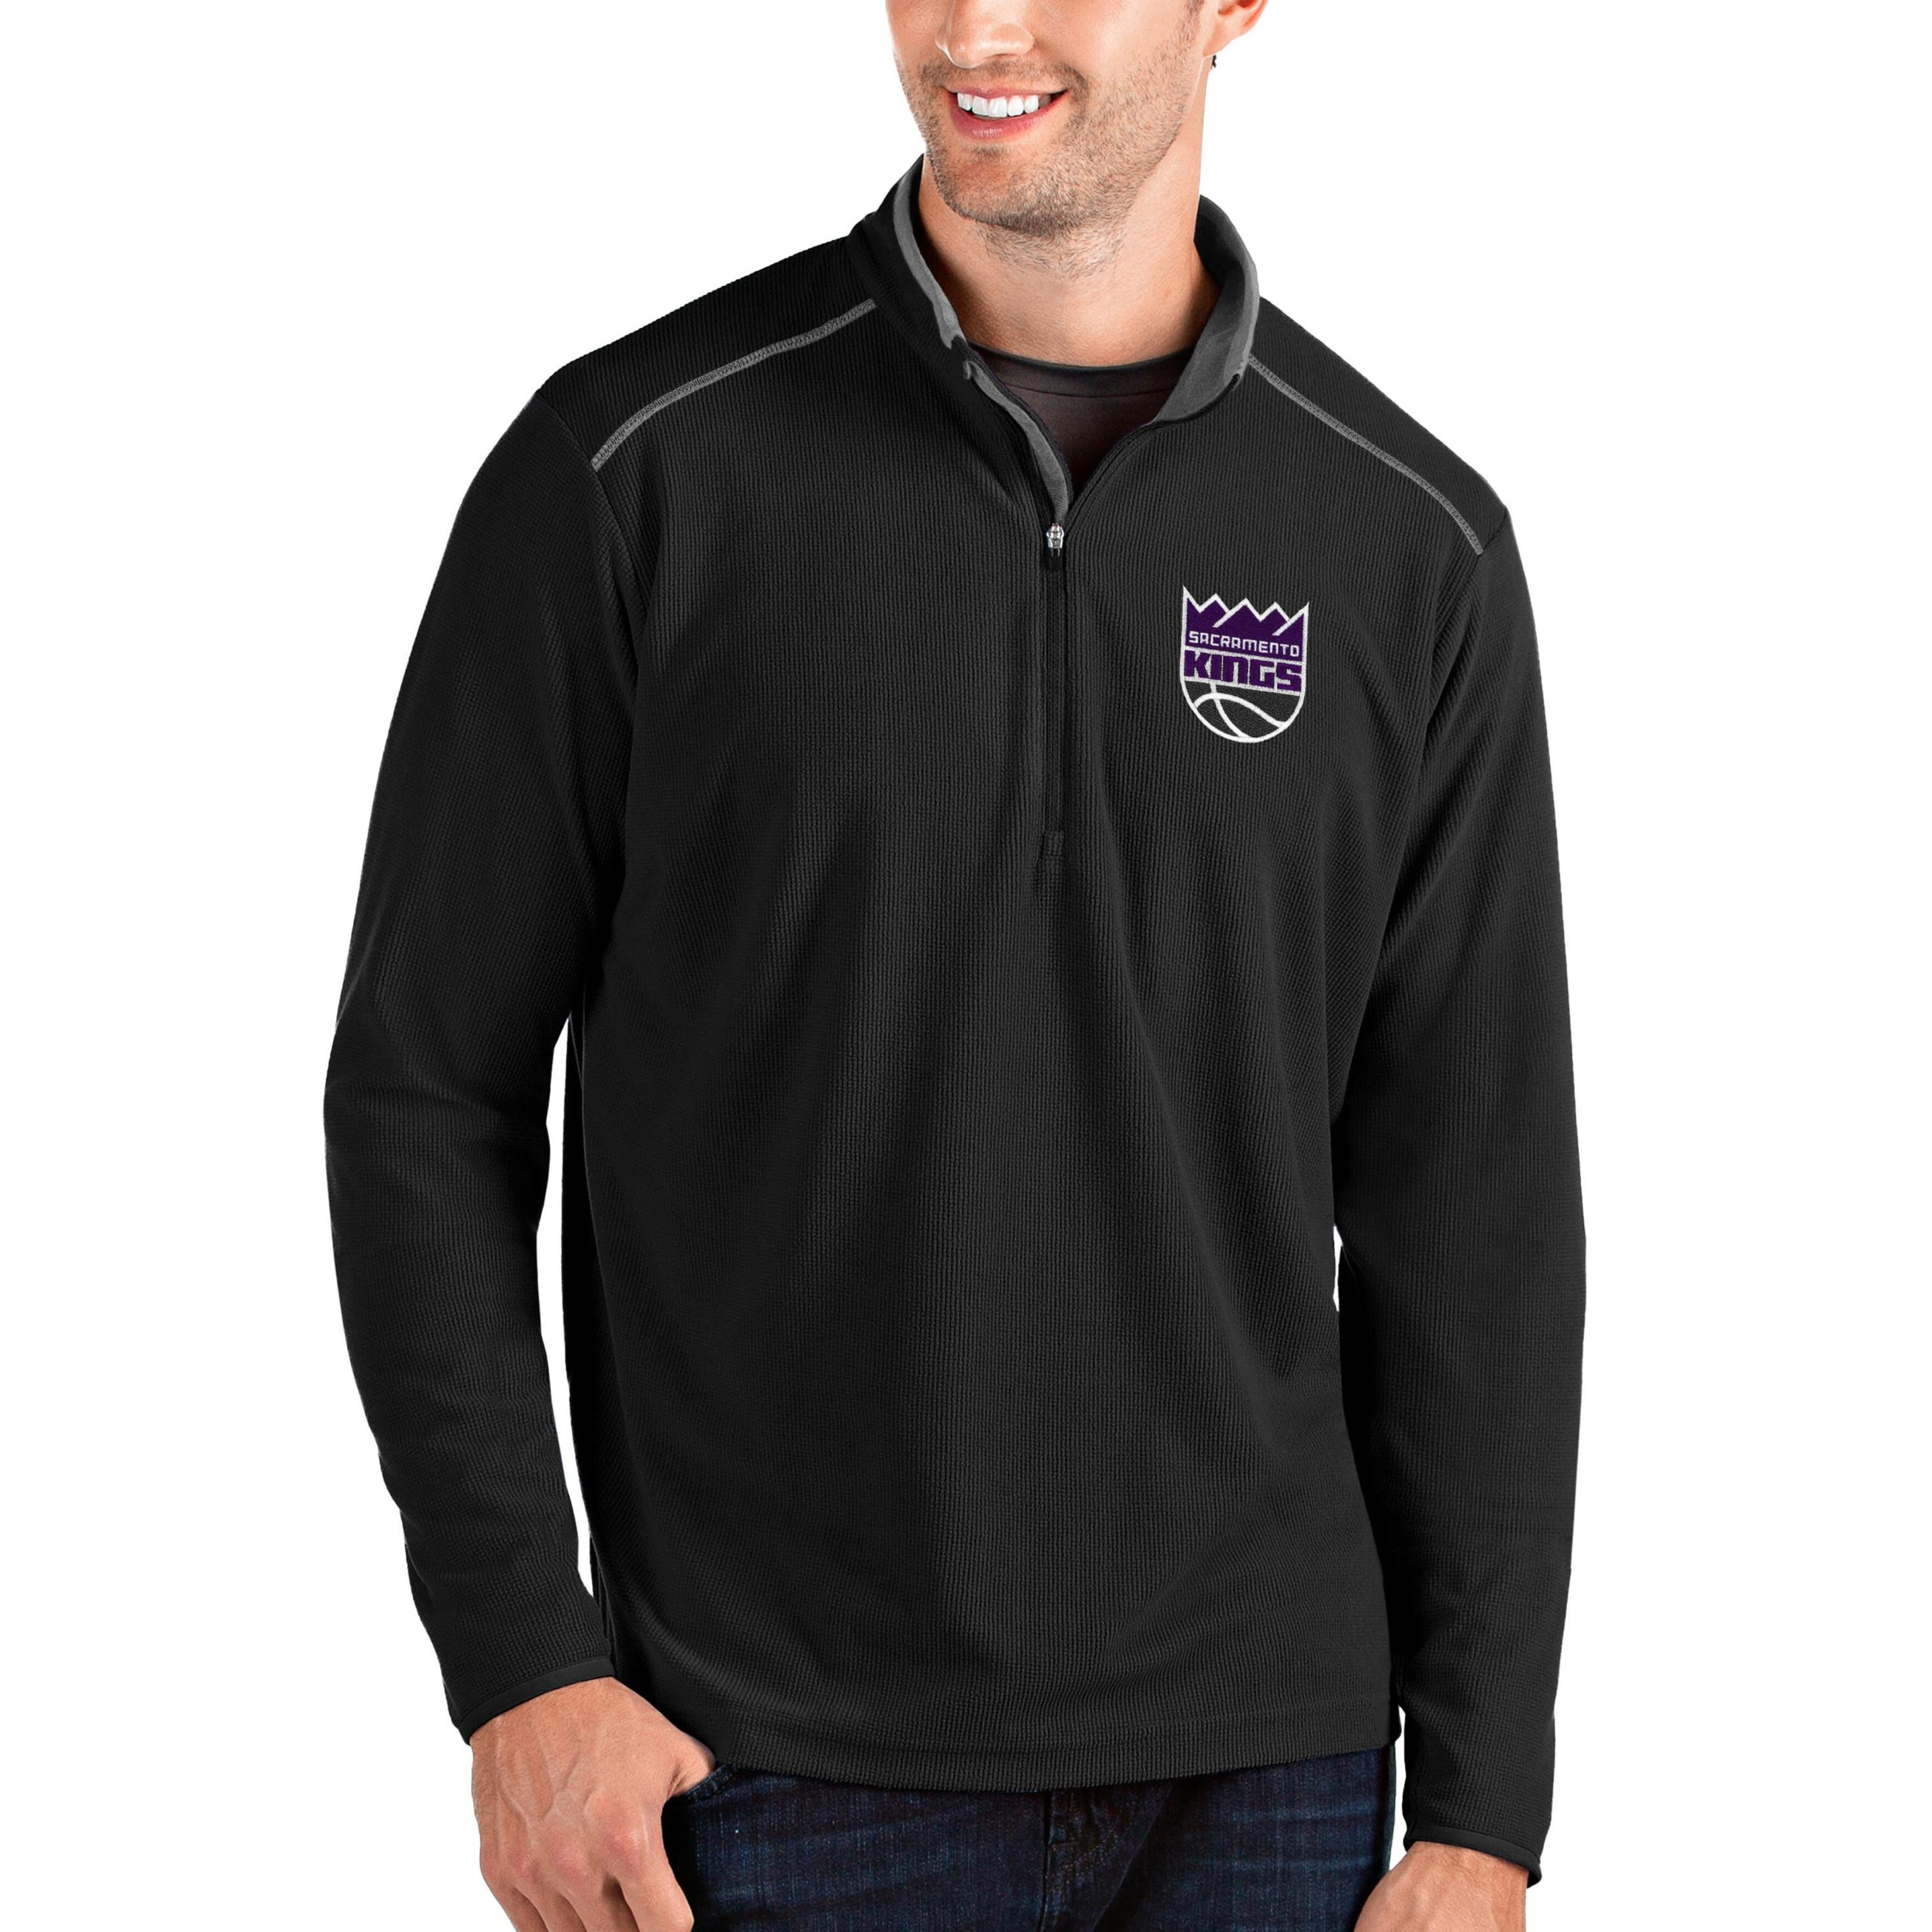 Sacramento Kings Antigua Big & Tall Glacier Quarter-Zip Pullover Jacket - Black/Gray